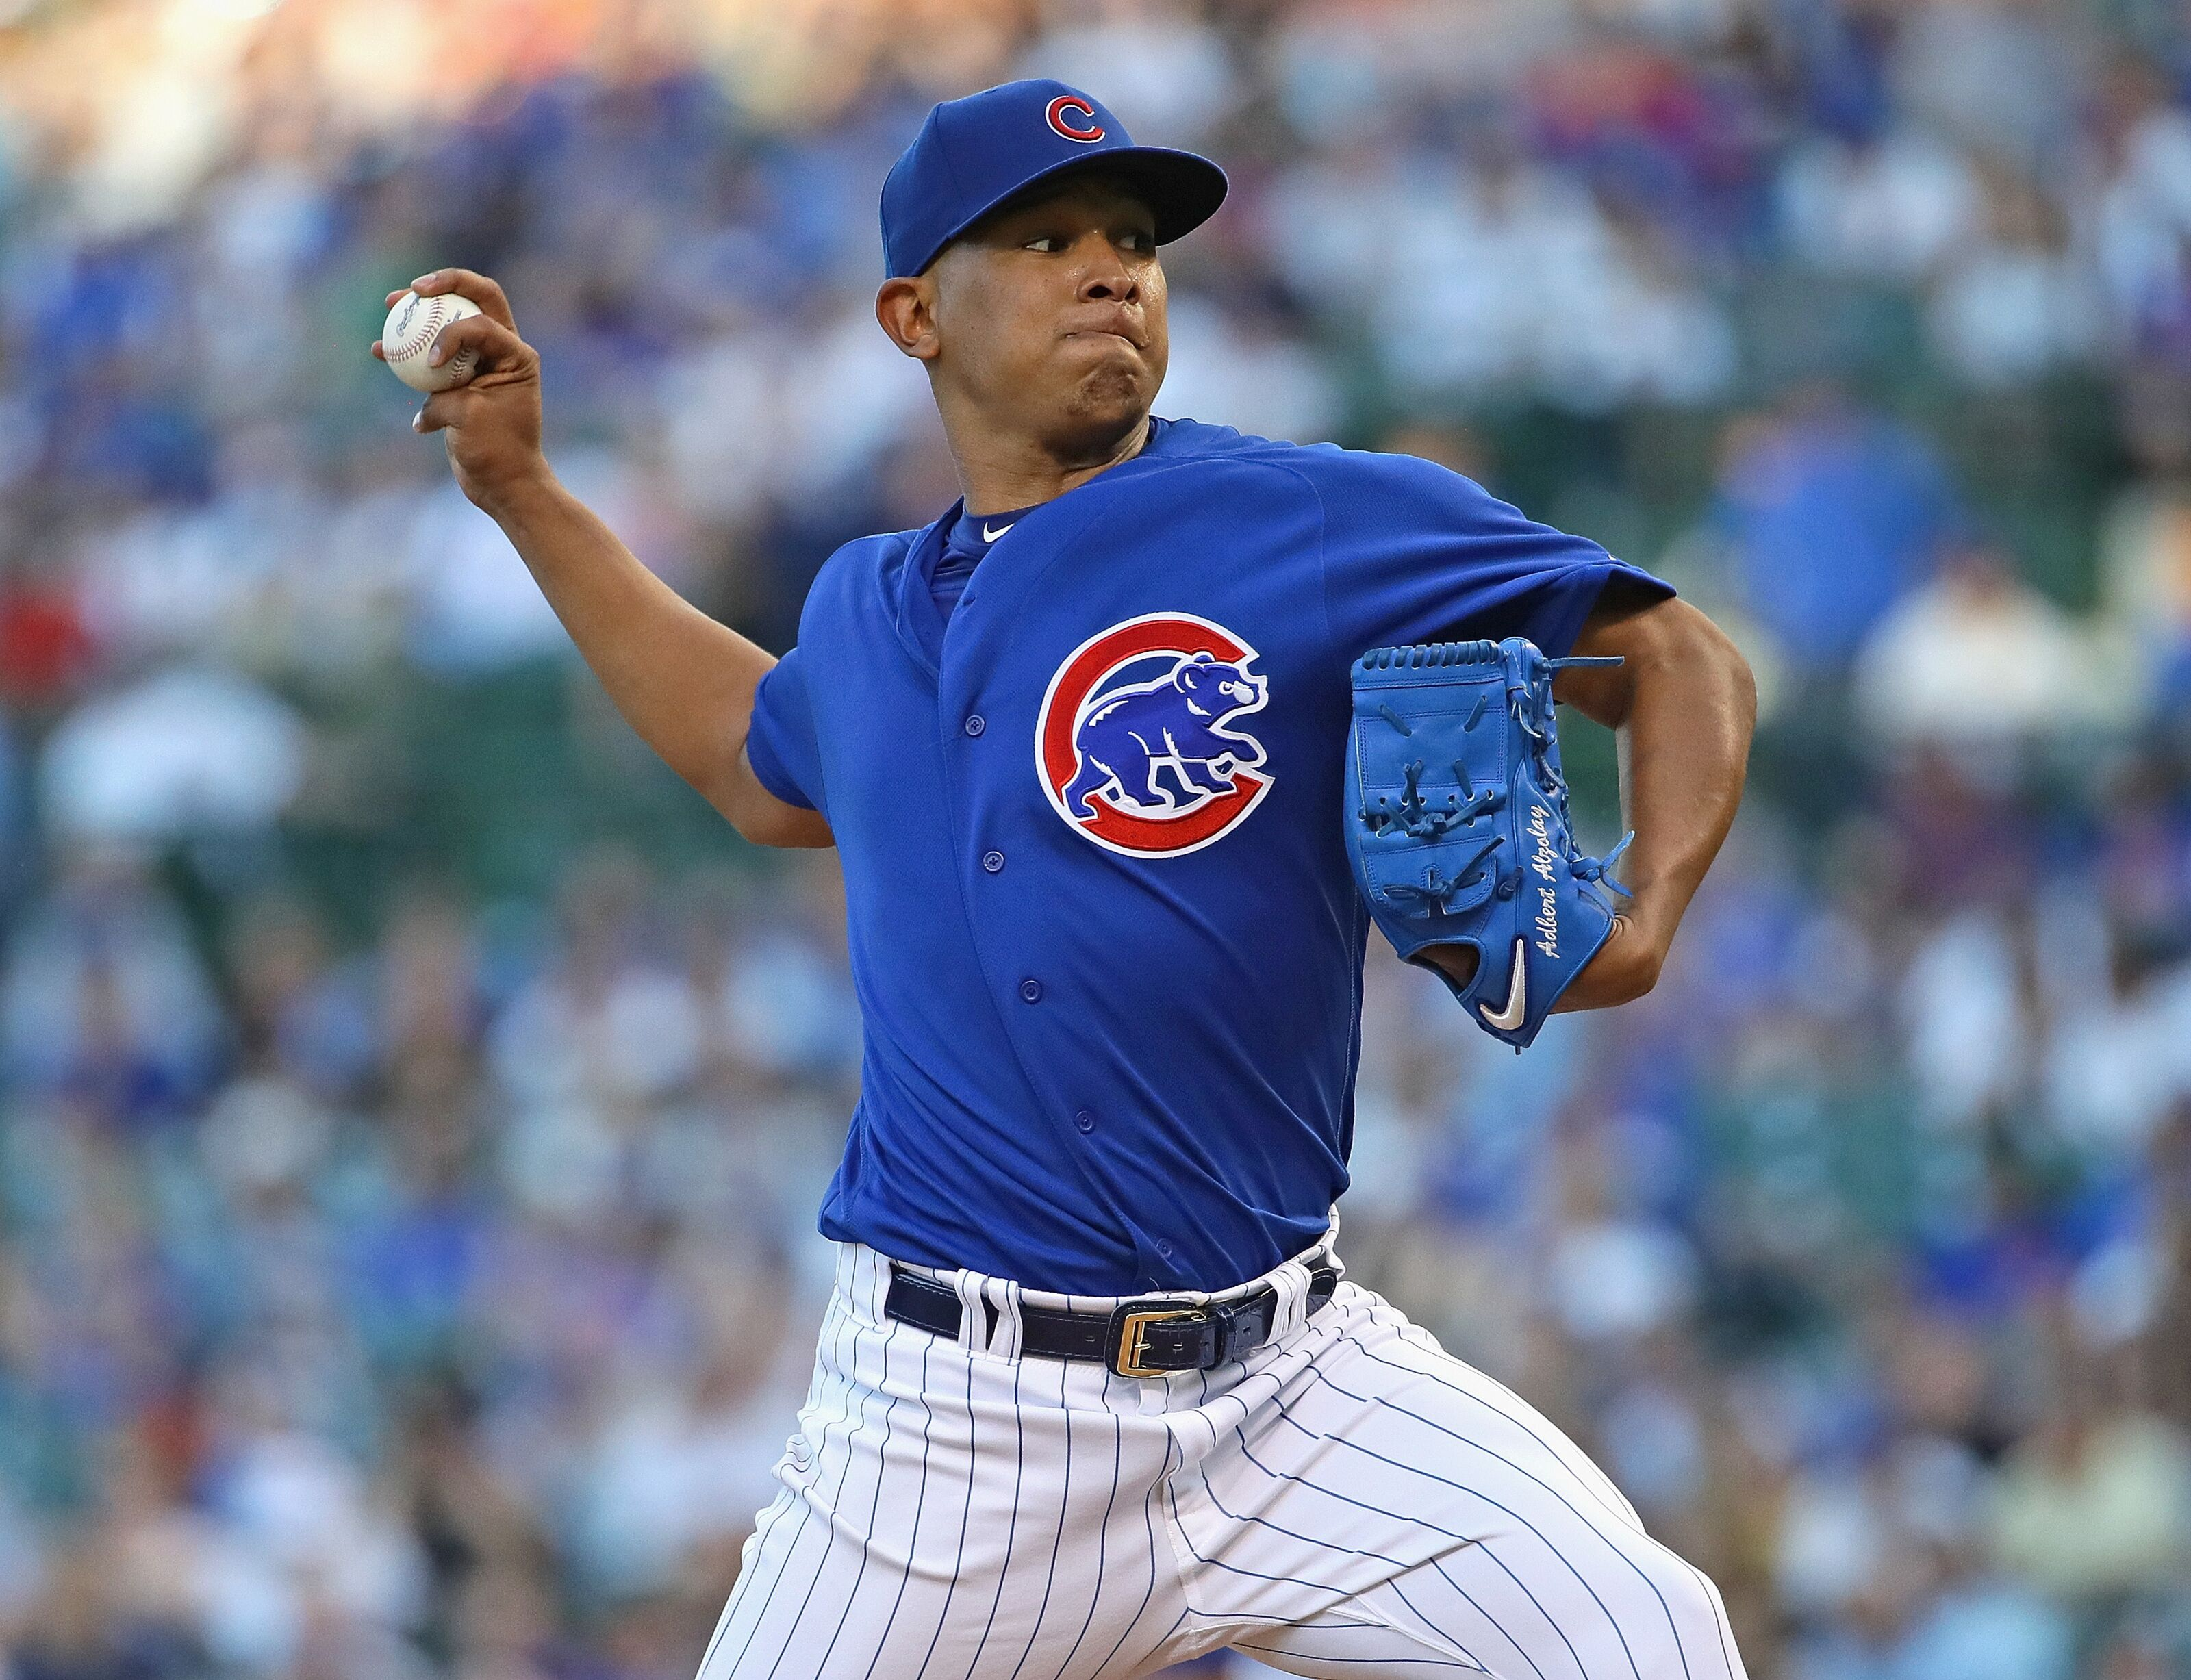 Chicago Cubs: 3 prospects to be ranked within MLB's Top 100 soon